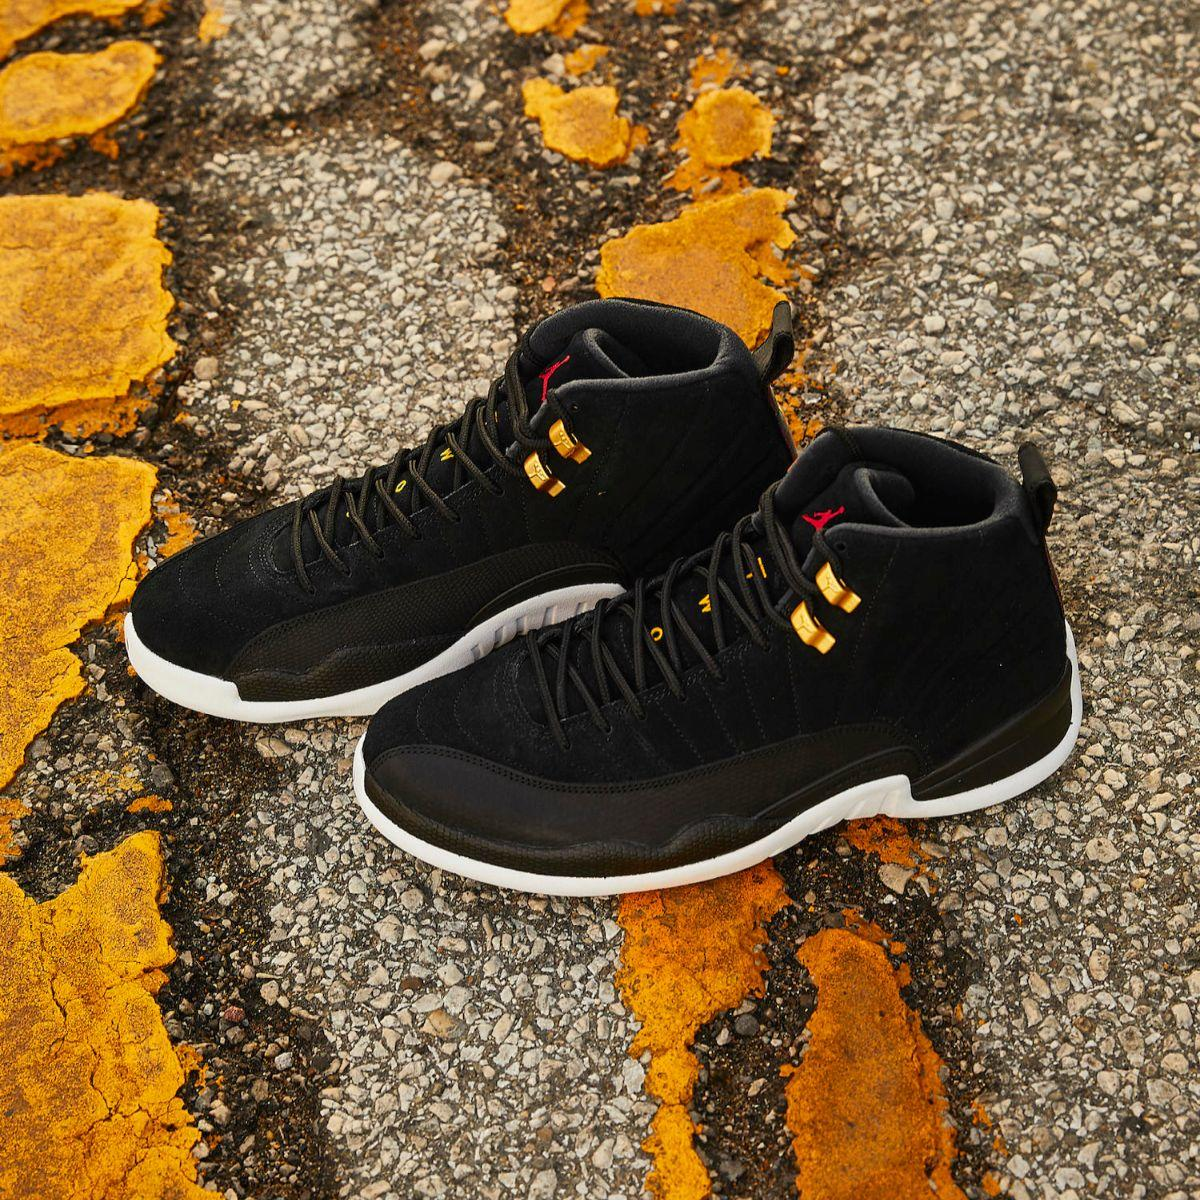 Finish Line On Twitter An Homage To A Classic The Air Jordan 12 Retro Black White Drops On Halloween Launch Details Https T Co Ax78nu08bn Https T Co Vak2mpdtgf